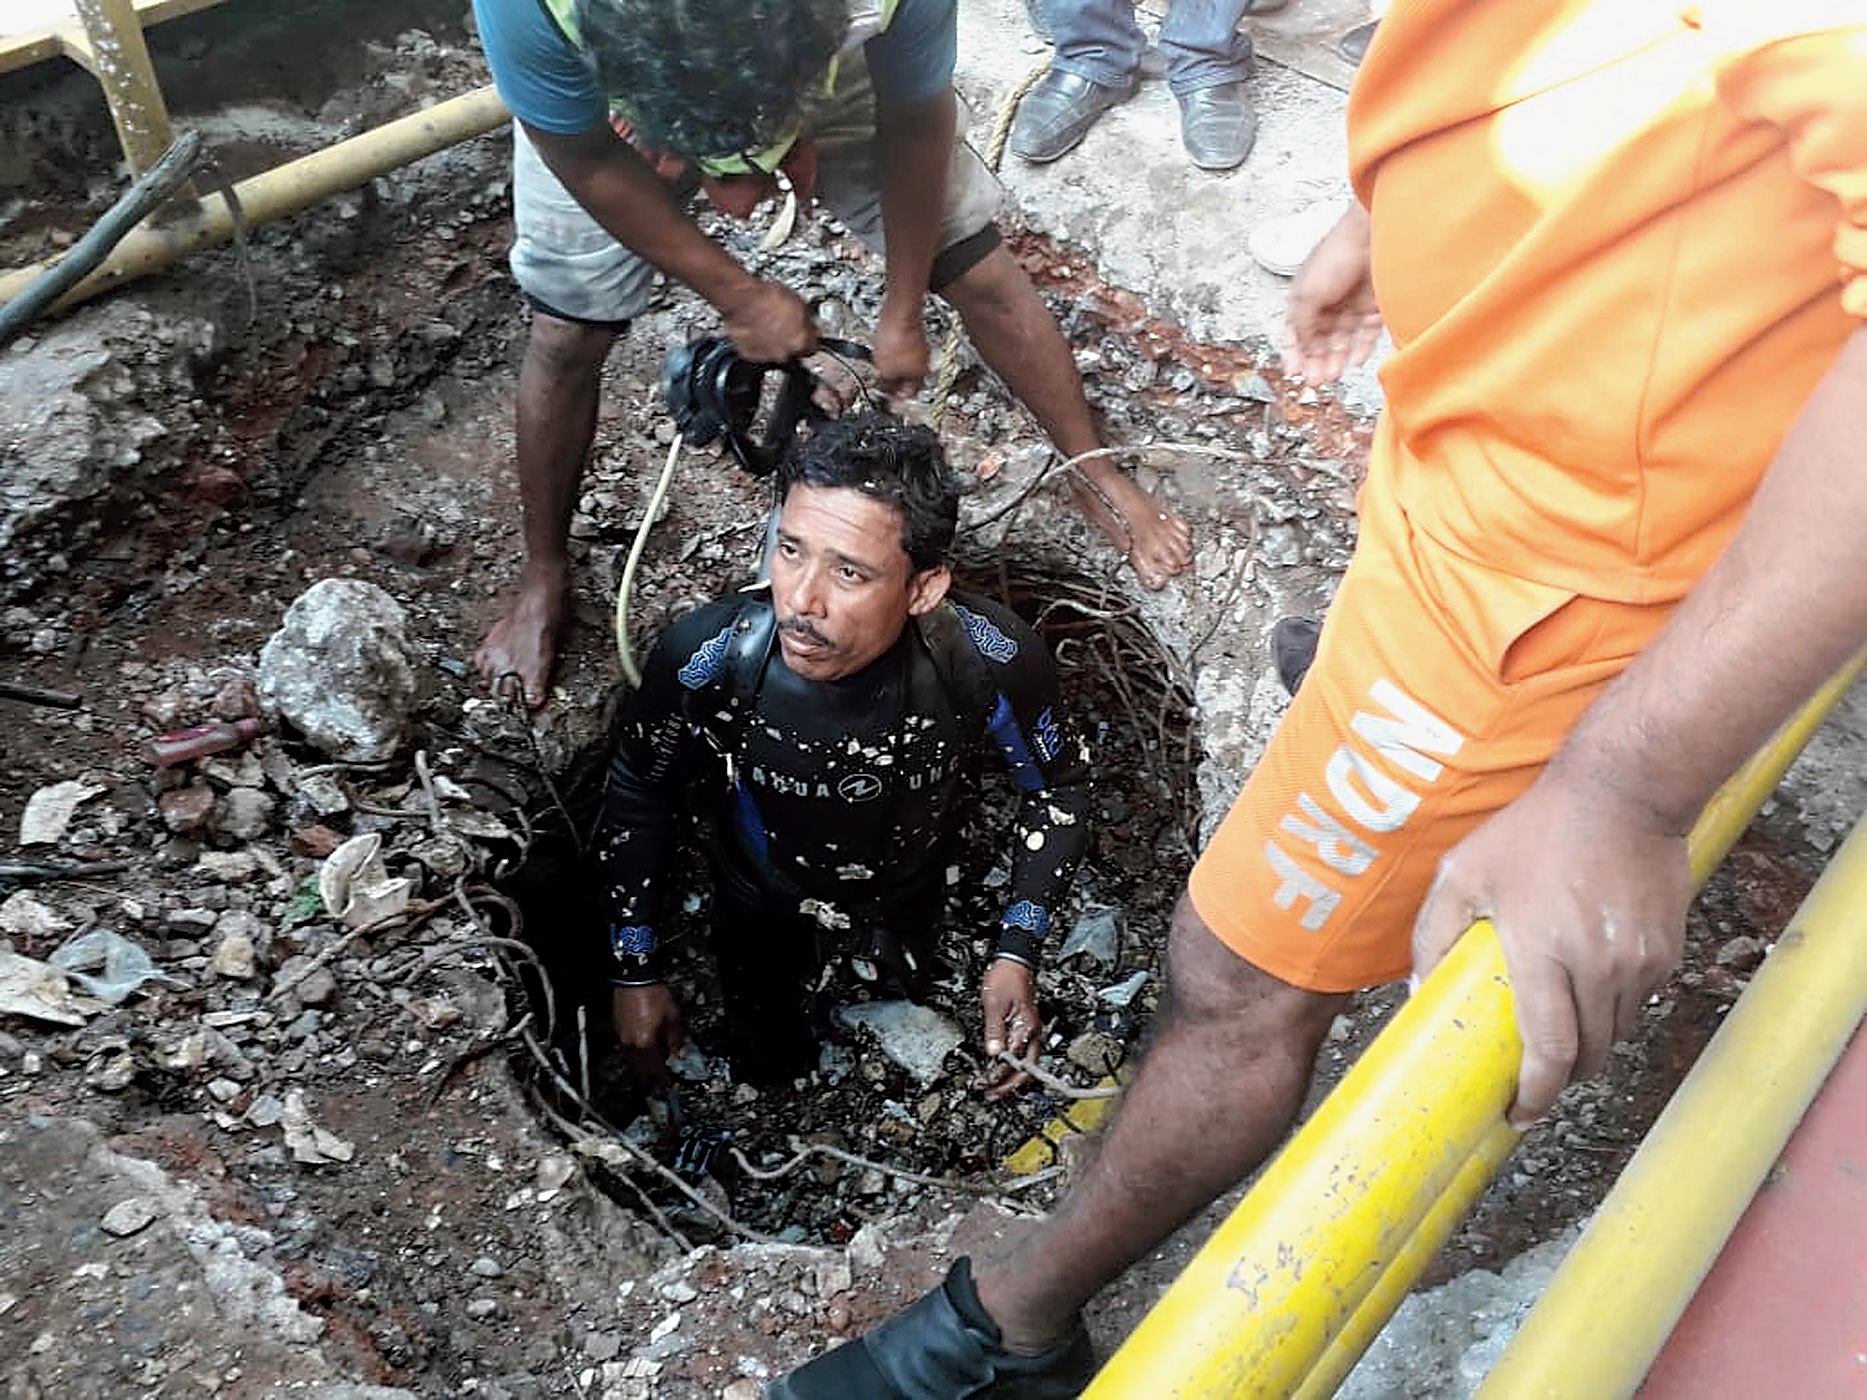 A diver during the rescue operation on Thursday.